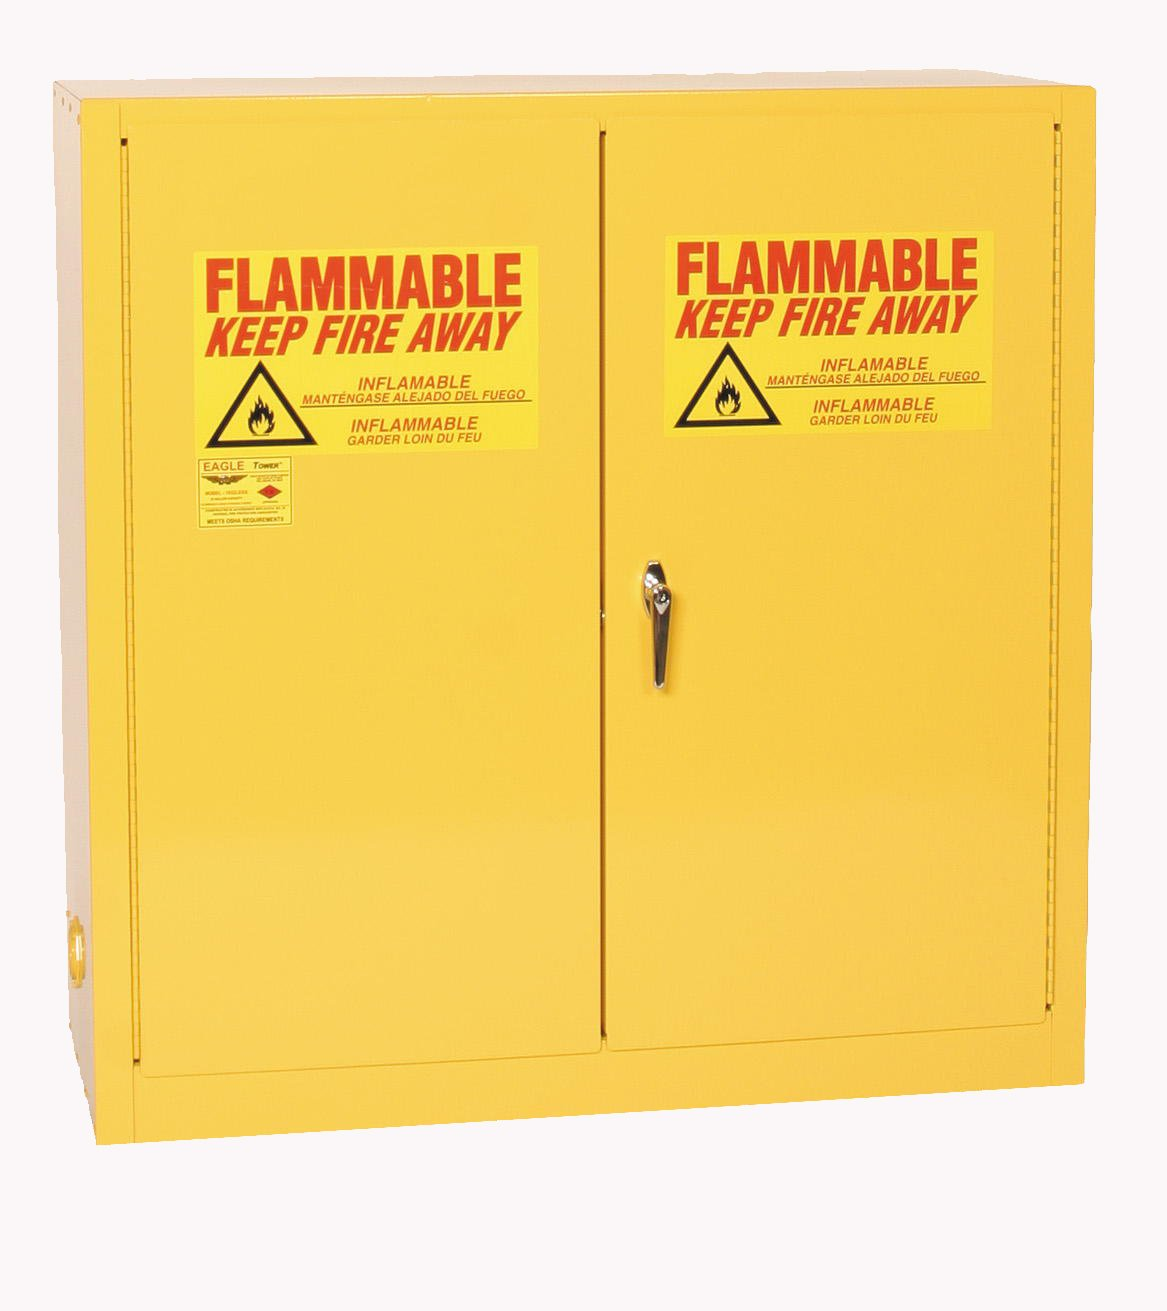 Eagle 1932 Safety Cabinet For Flammable Liquids 2 Door Auto Mobile Lift Wiring Diagram Manual Close 30 Gallon 44height 43width 18depth Steel Yellow Industrial